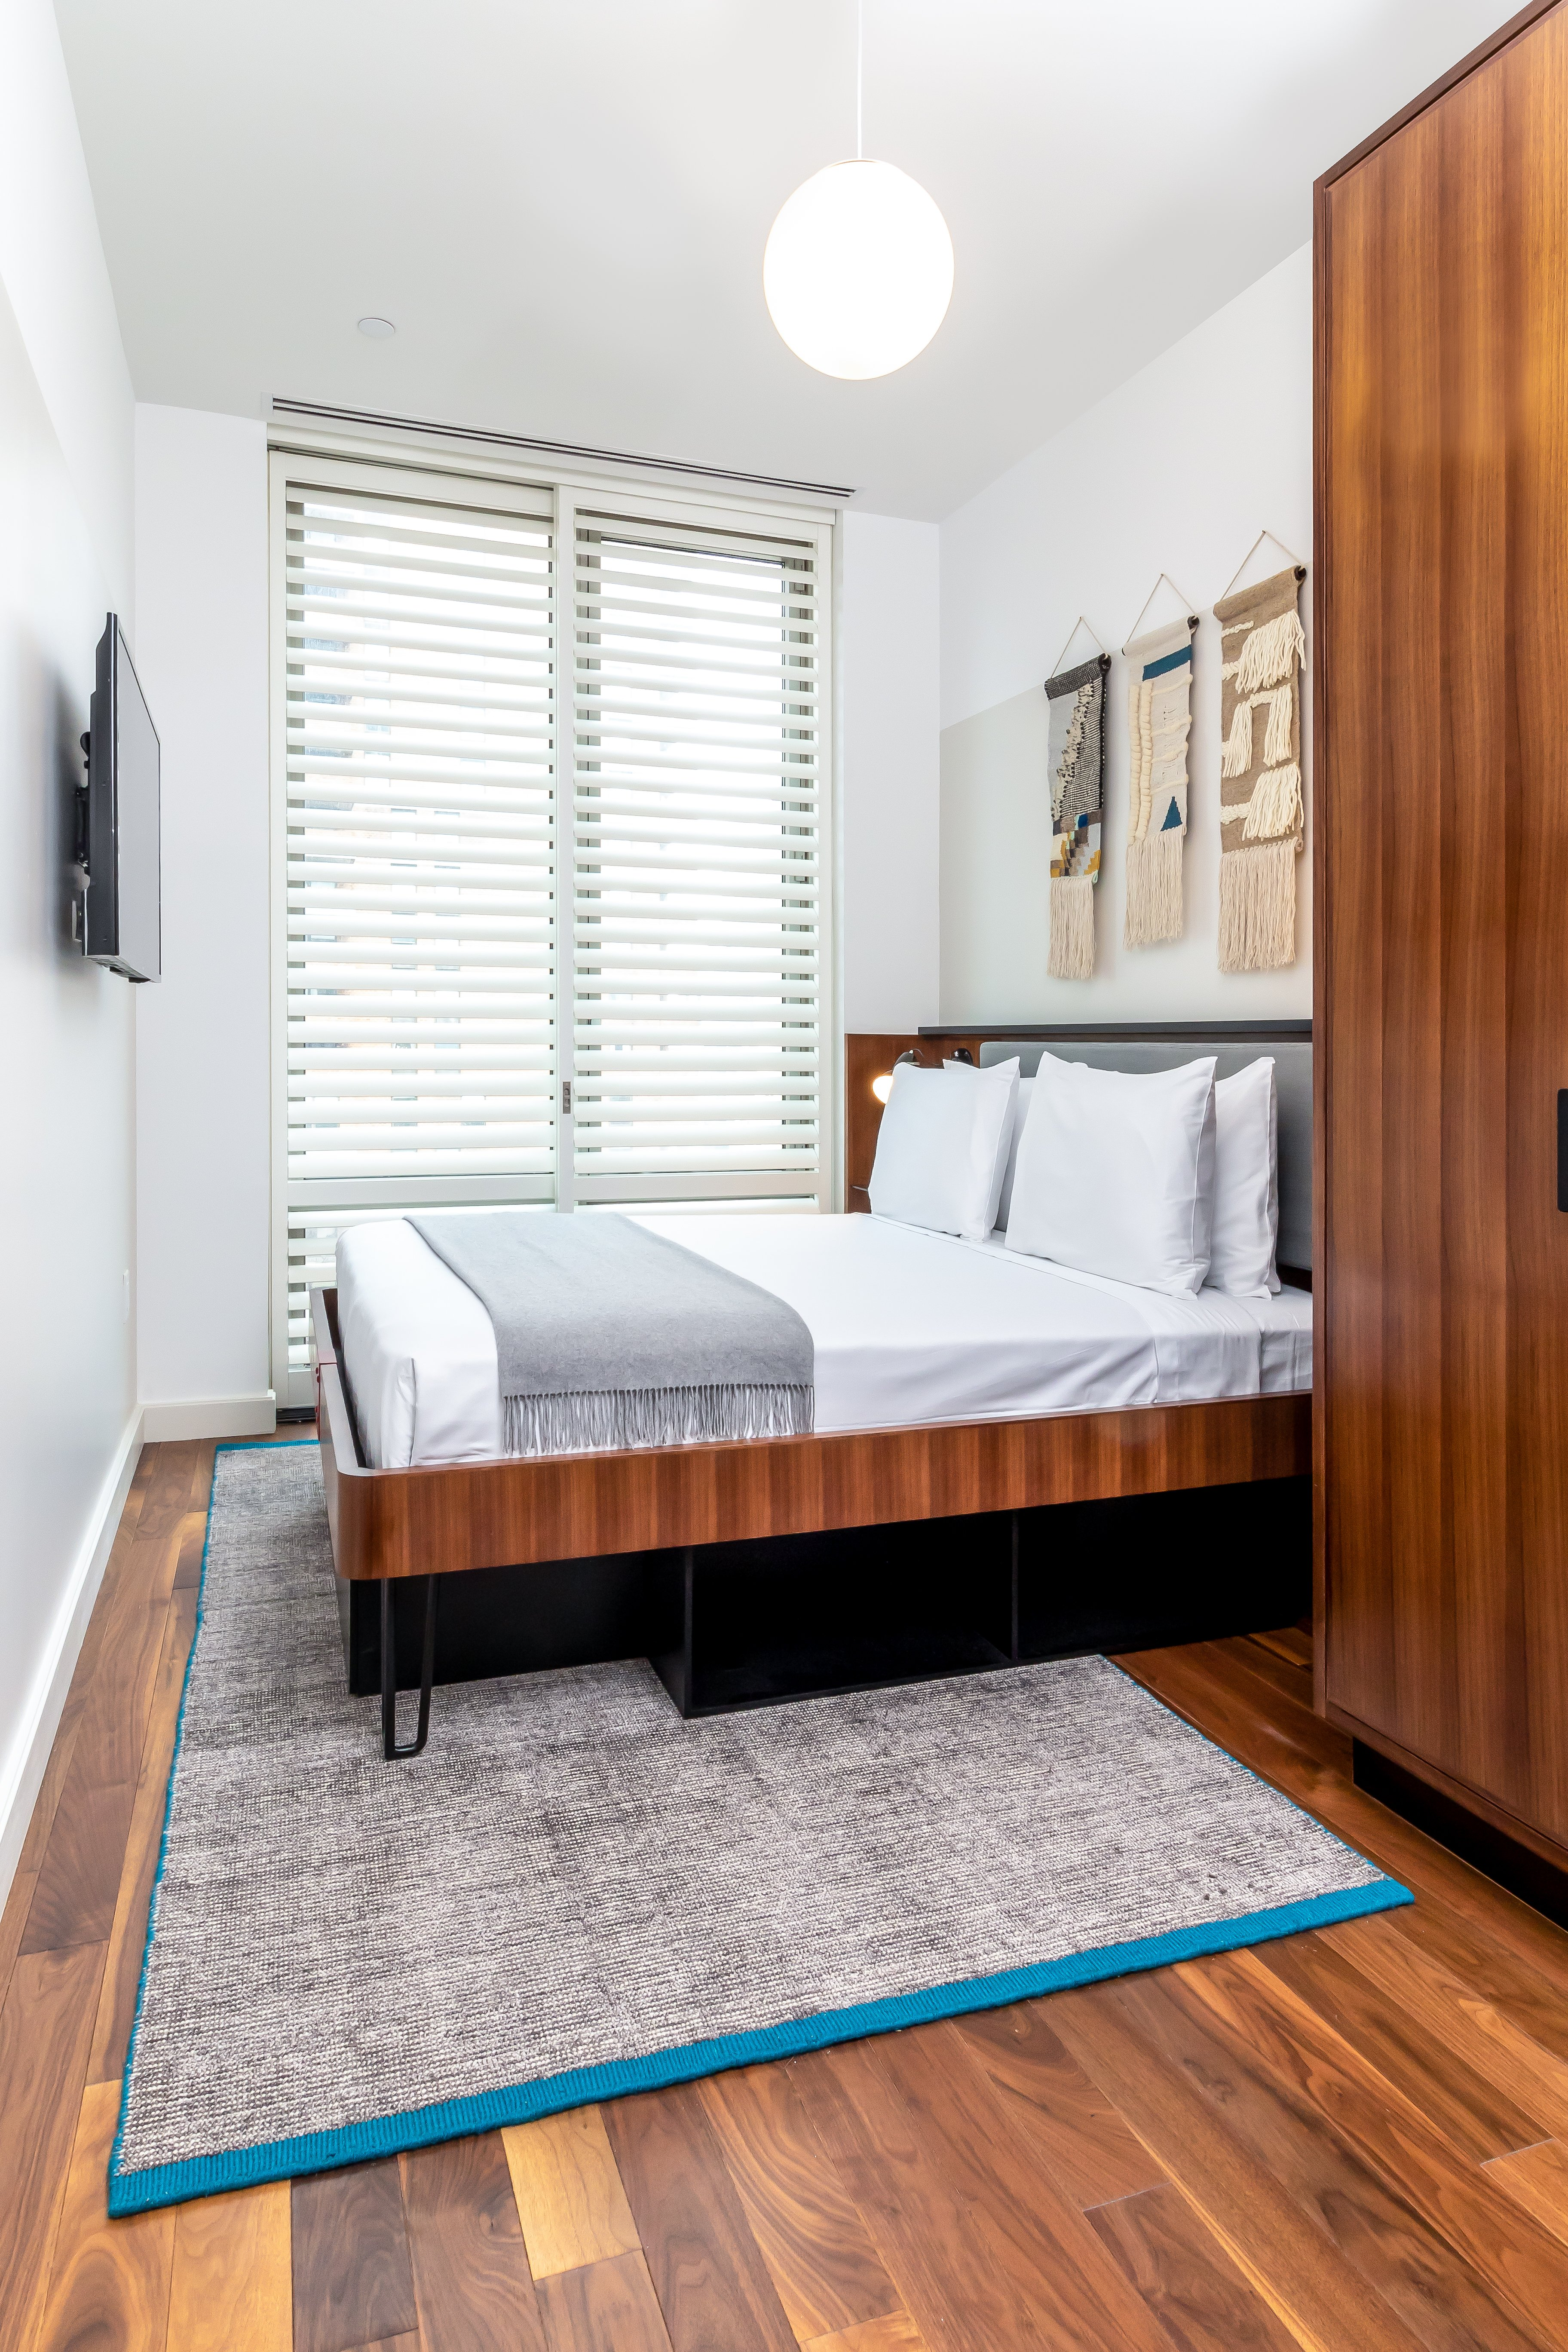 Like the Pod guestrooms downstairs, the Pod Pad bedrooms are small, but efficient.